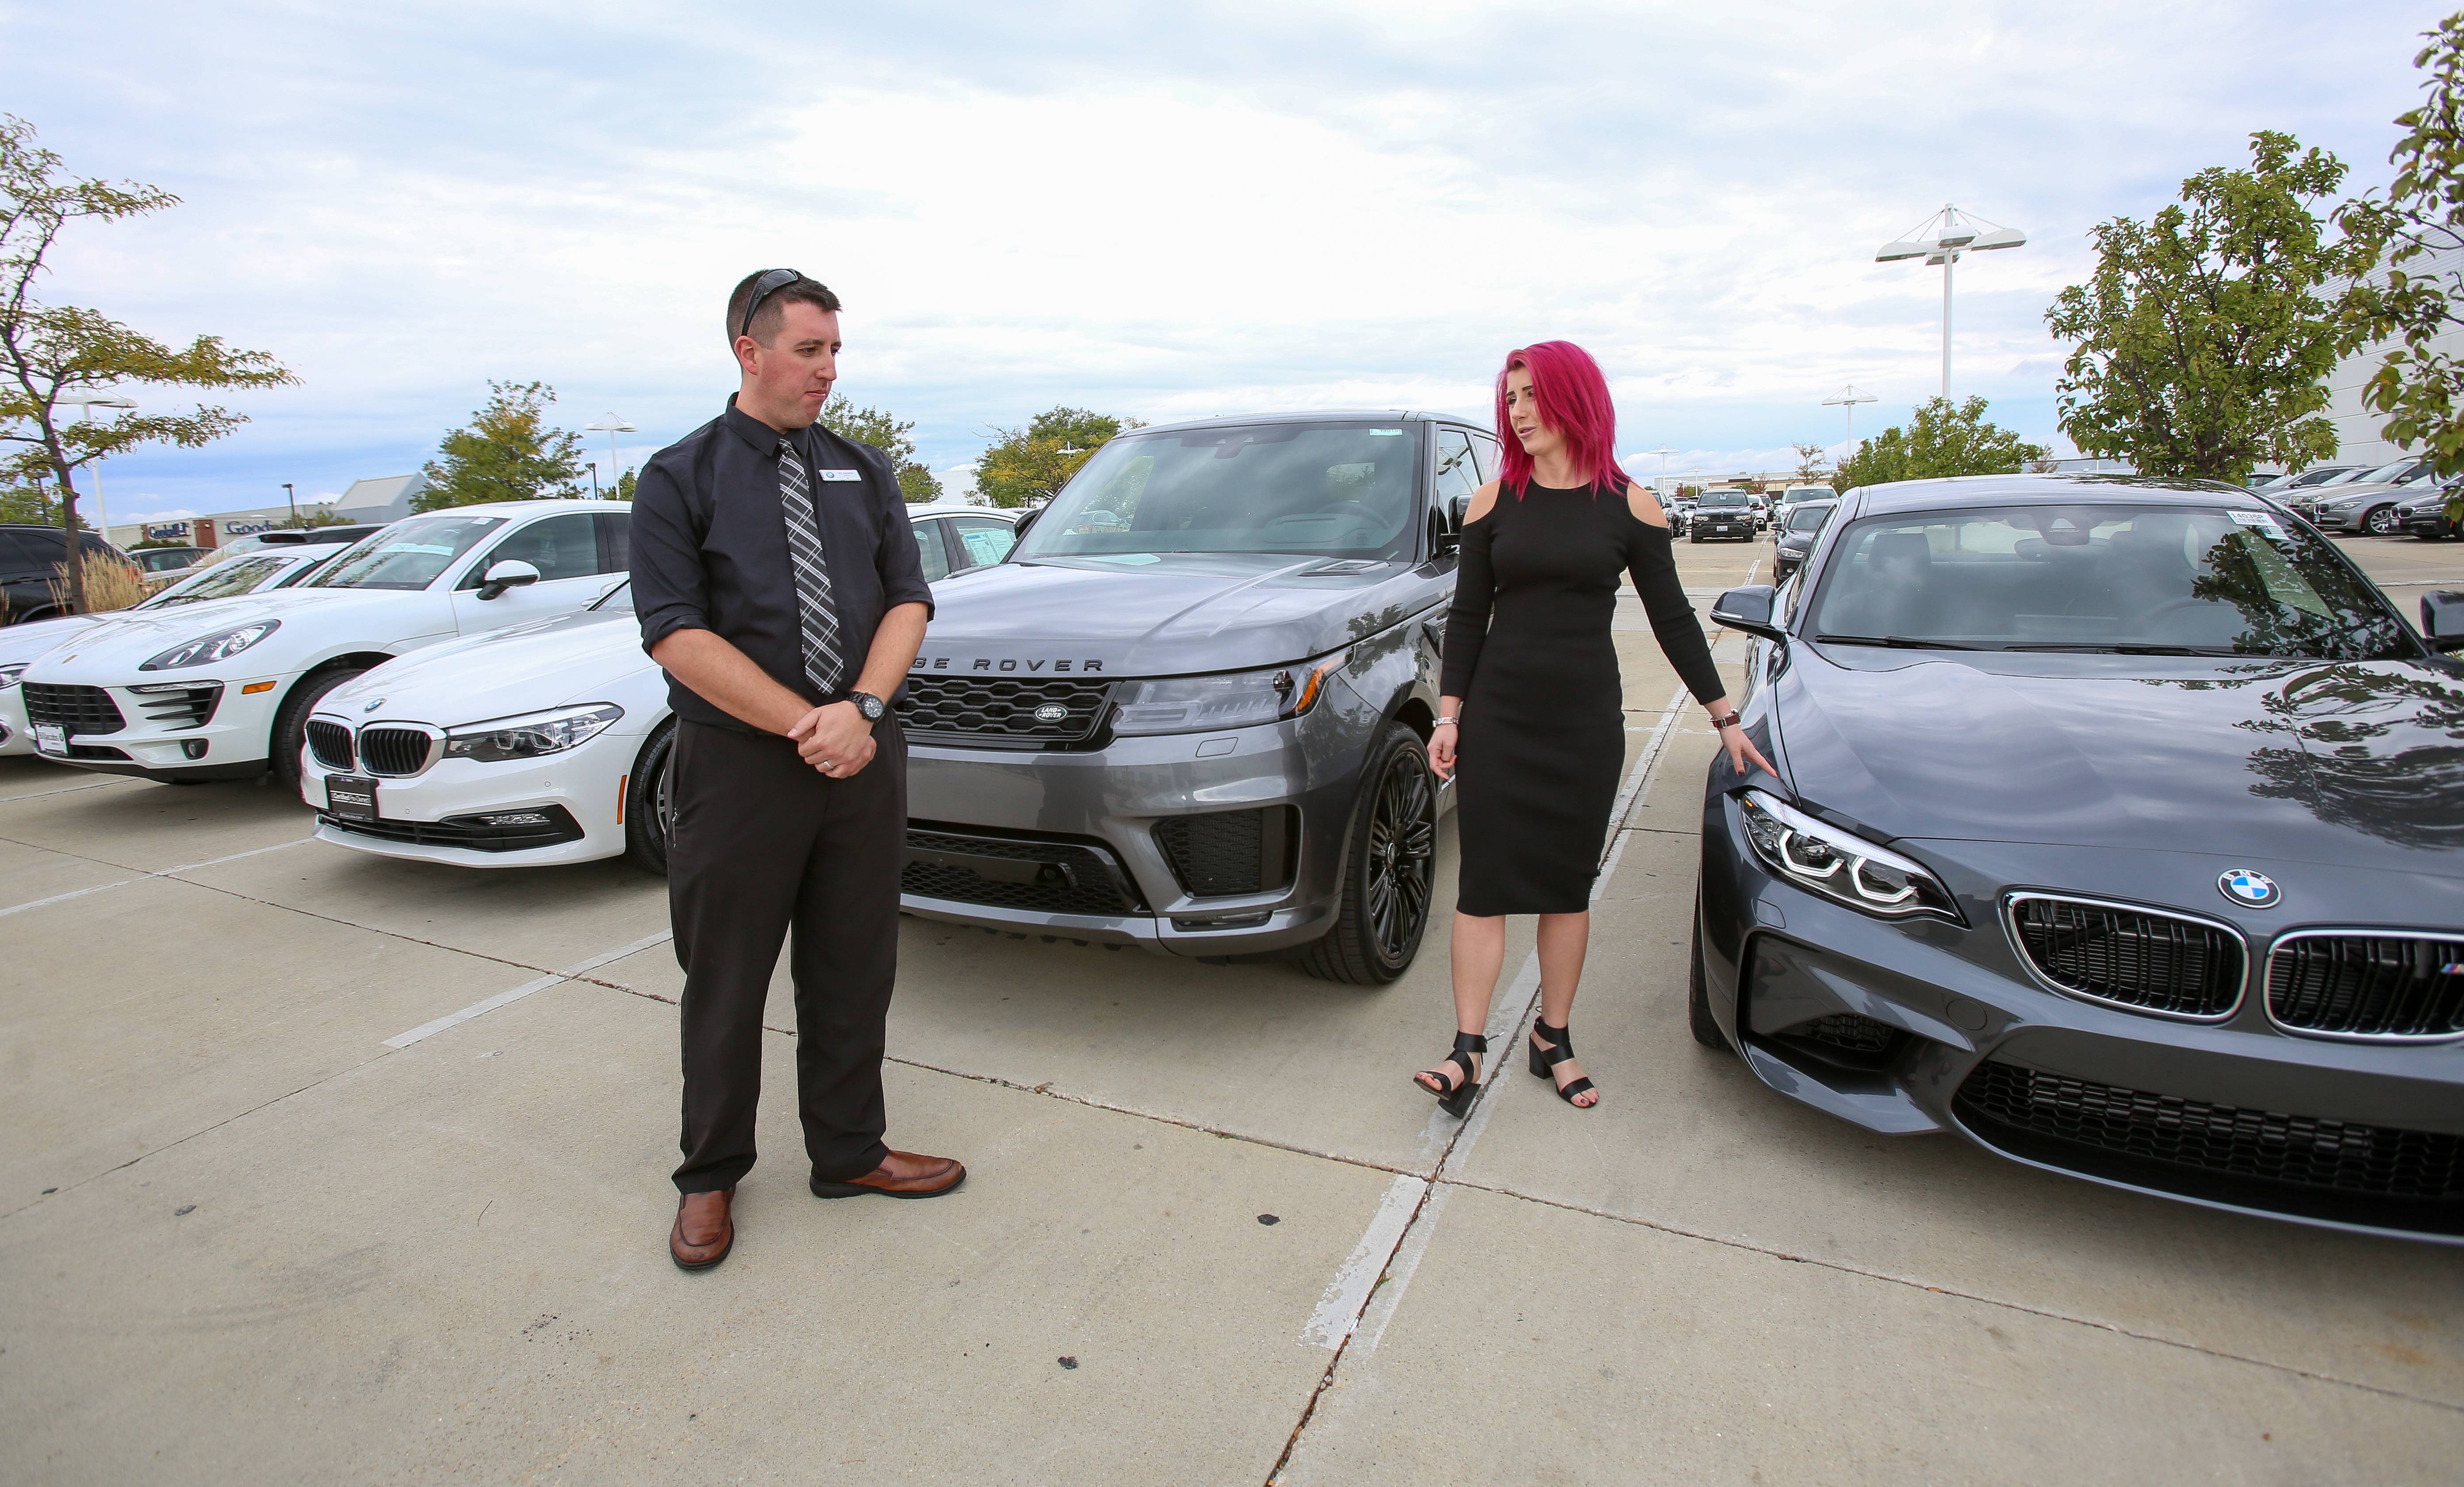 Nic Cortellini, a concierge in the new Shift by Bill Jacobs subscription program, reviews some of the vehicles in the subscription fleet with Leigh Martino, operations manager for the program.